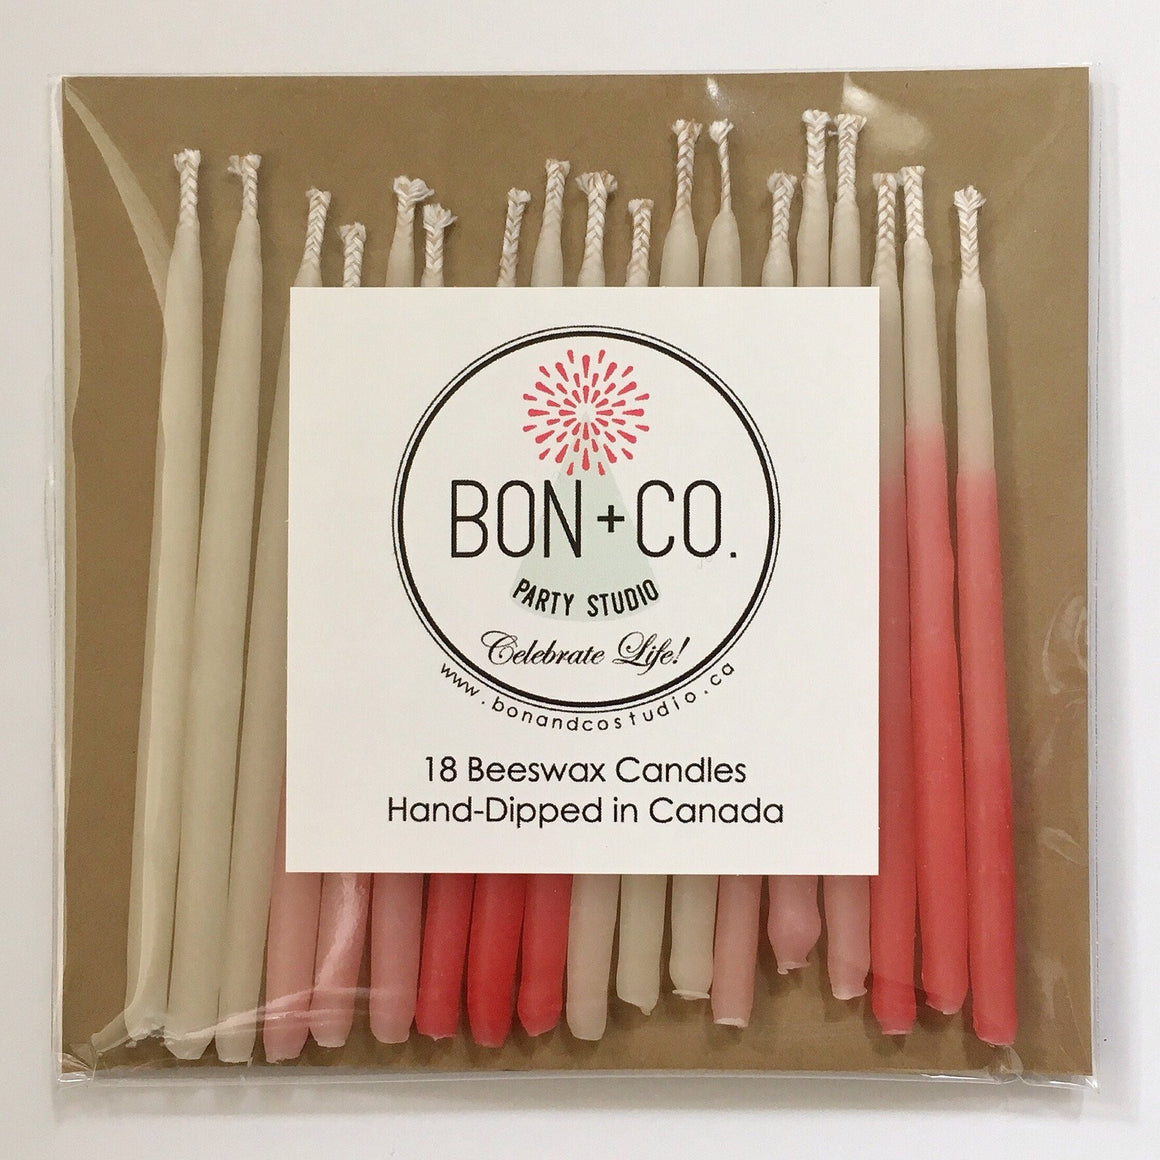 NATURAL PARTY CANDLES - BEESWAX OMBRE WARM HUES, Candles + Sparklers, BON + CO - Bon + Co. Party Studio